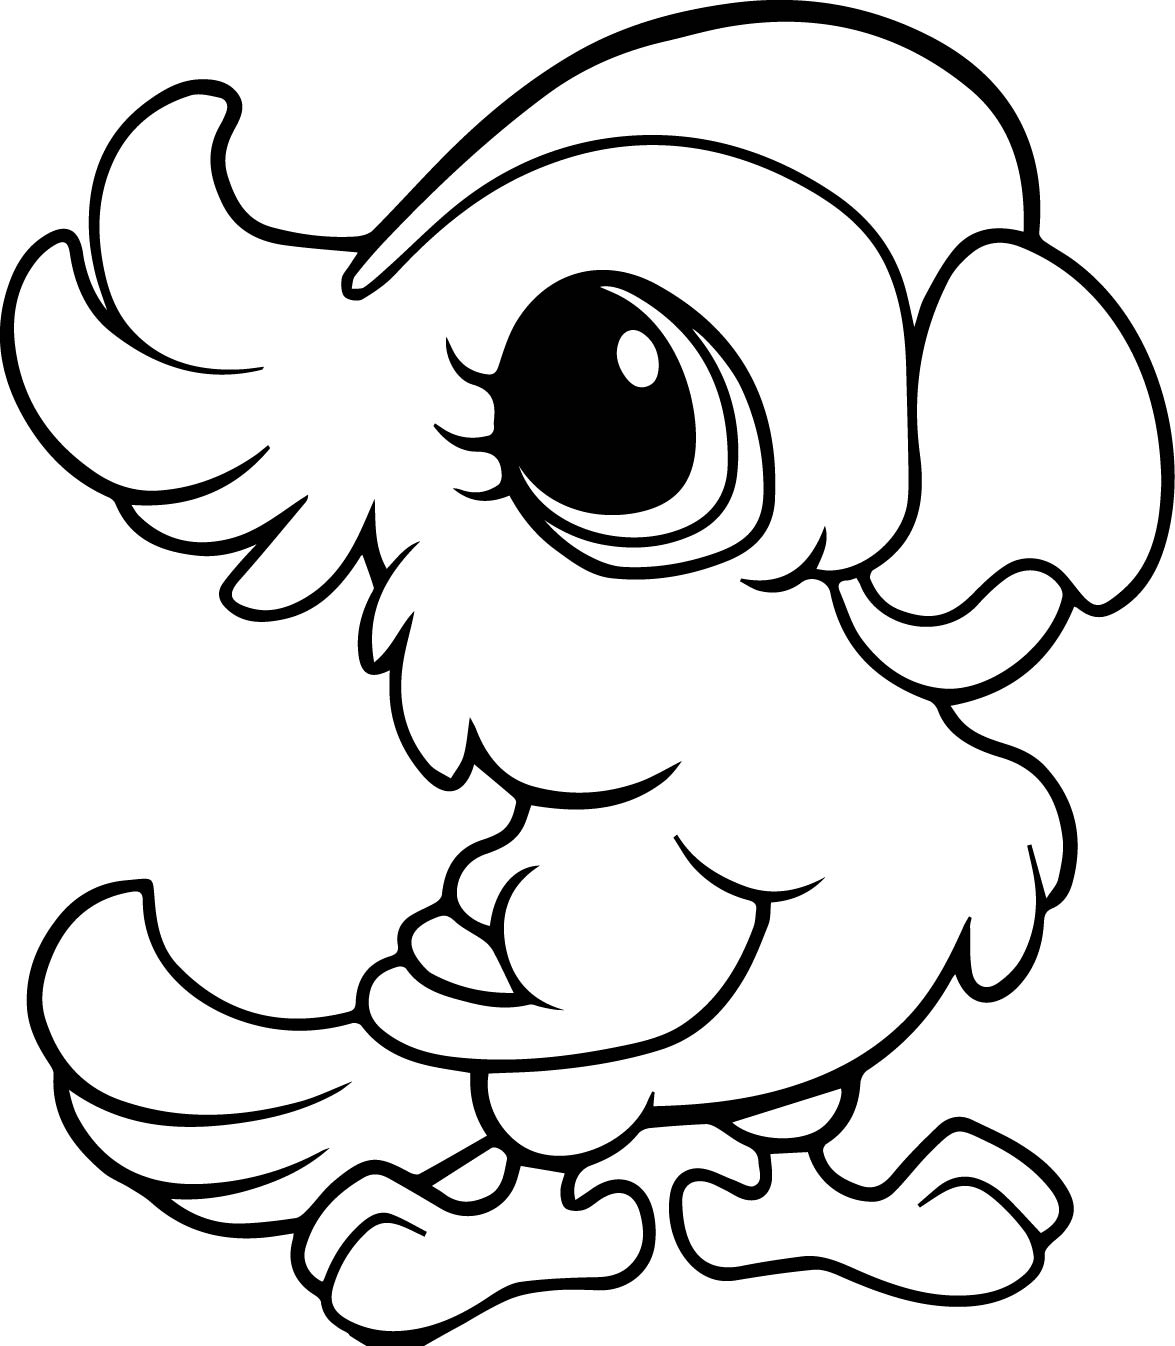 1175x1346 New Cute Animal Coloring Pages For Girls Dolphins And Dogs On Same